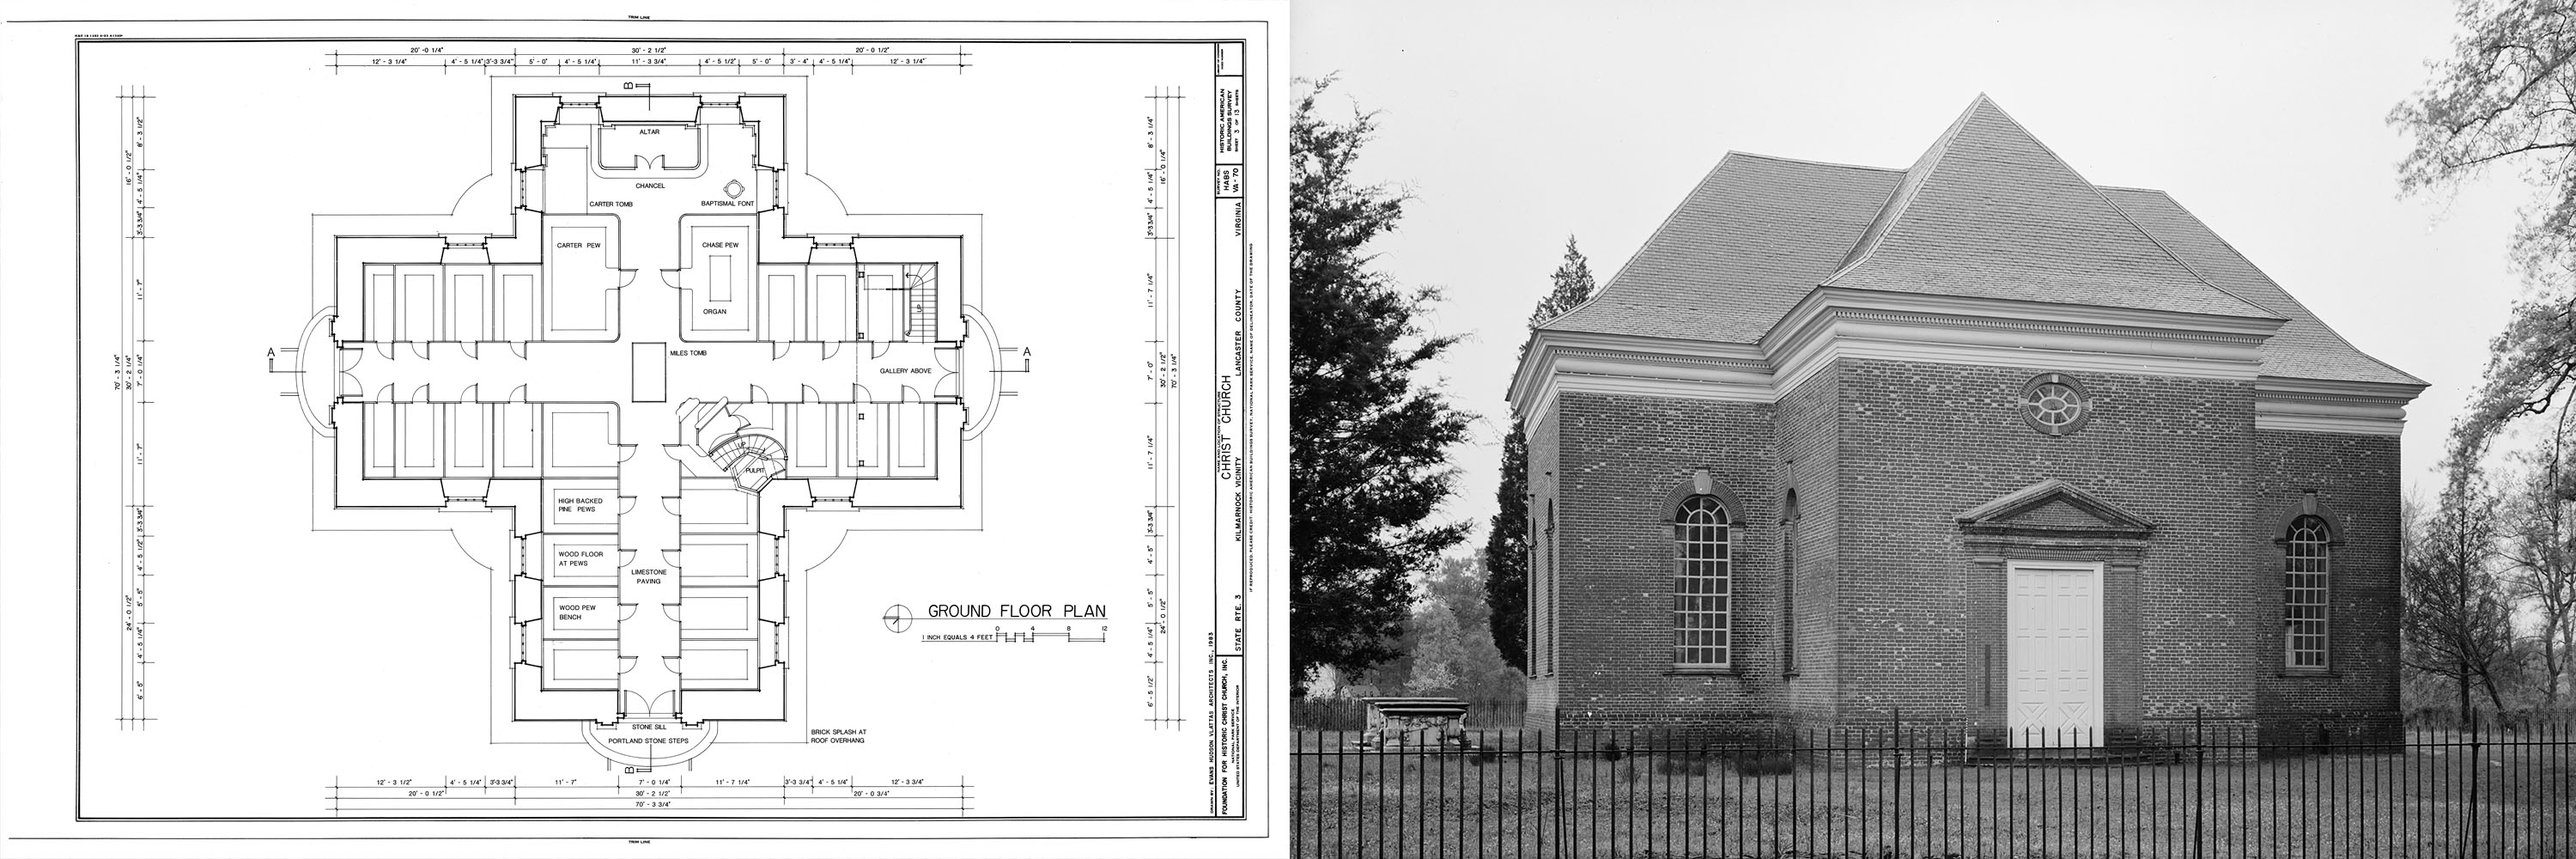 Blueprint and photograph of christ church the american yawp reader christ church virginia via library of congress malvernweather Choice Image